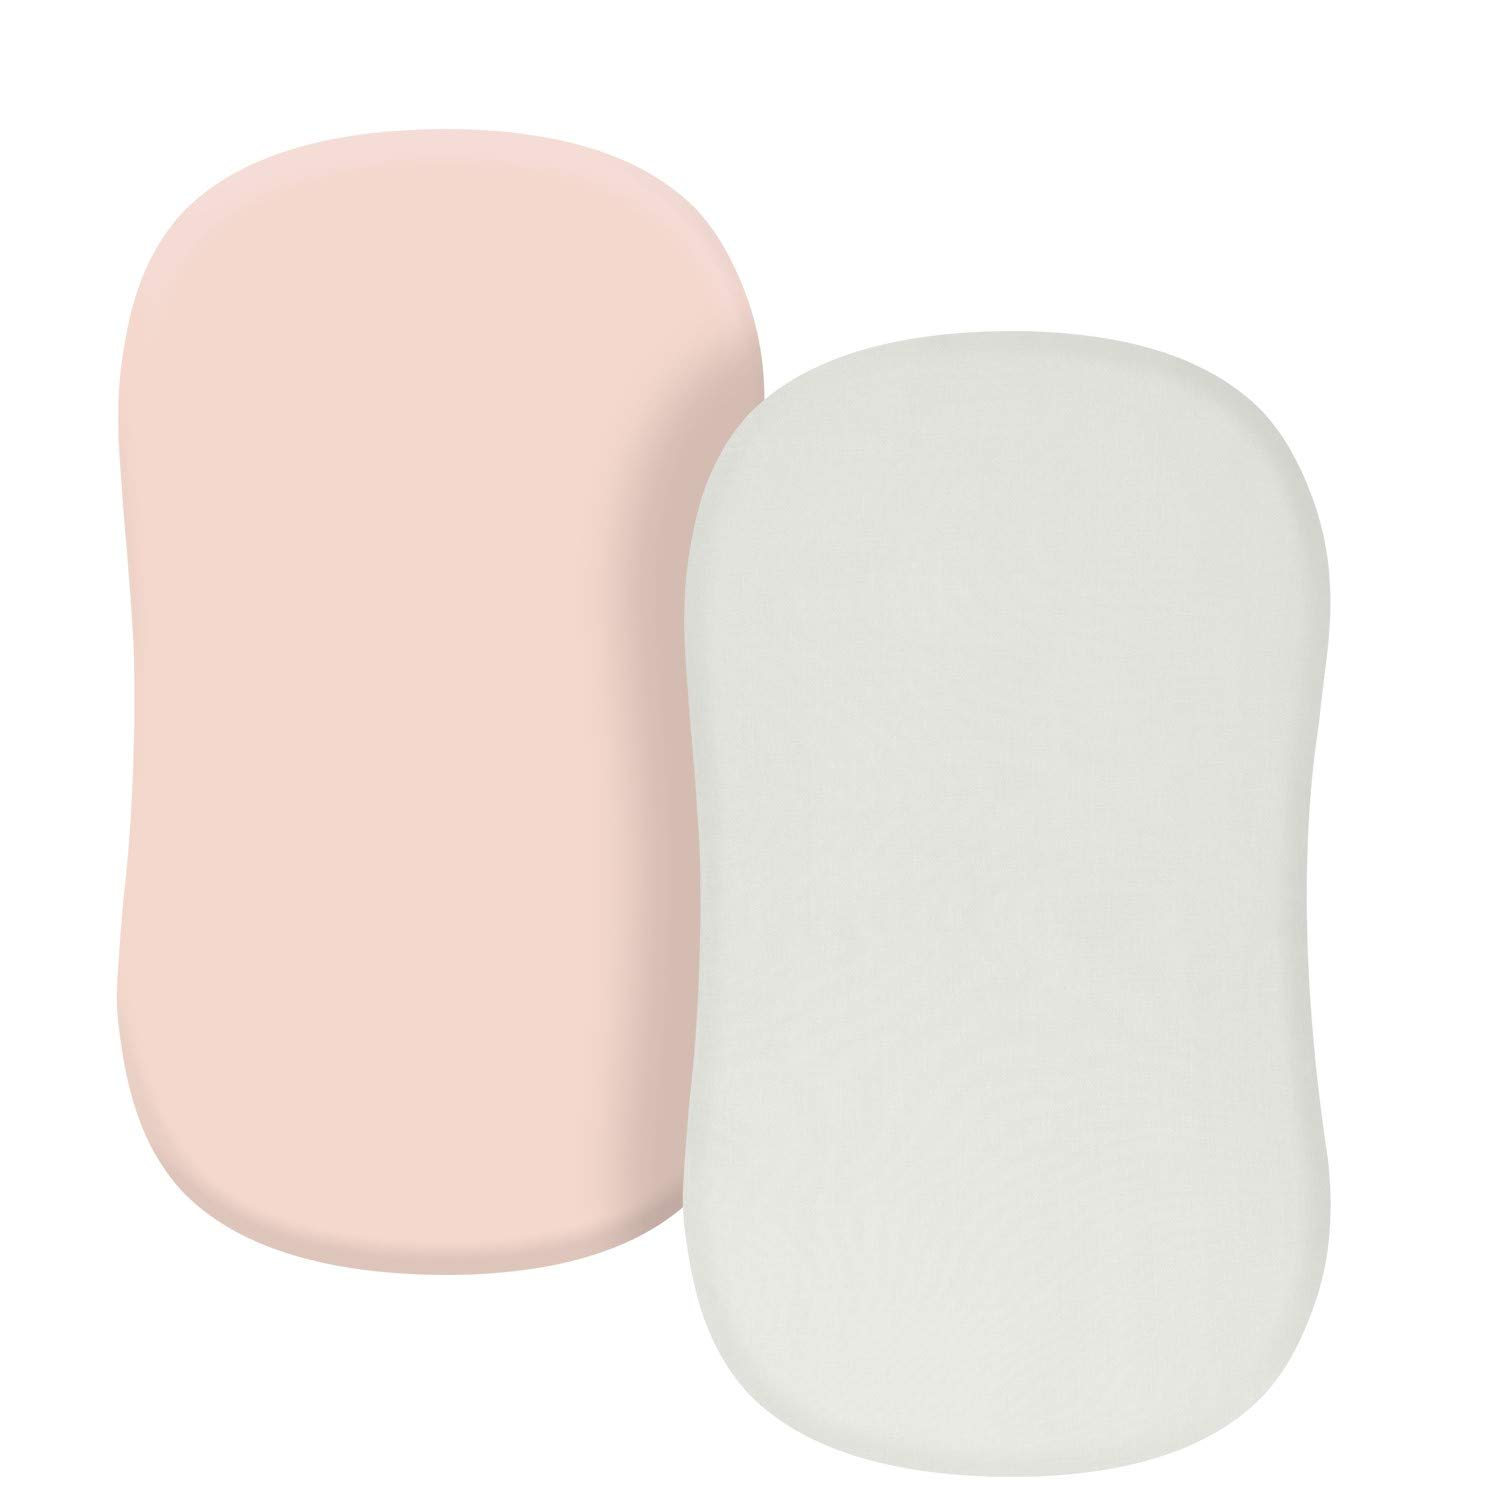 TILLYOU Jersey Knit Soft Bassinet Sheets Set, 32''x16'' Flexible for Different Cradle and Bassinet Mattress, Super Soft Breathable Cozy Baby Cradle Sheets, 2 Pack Peachy Pink & Lt Gray